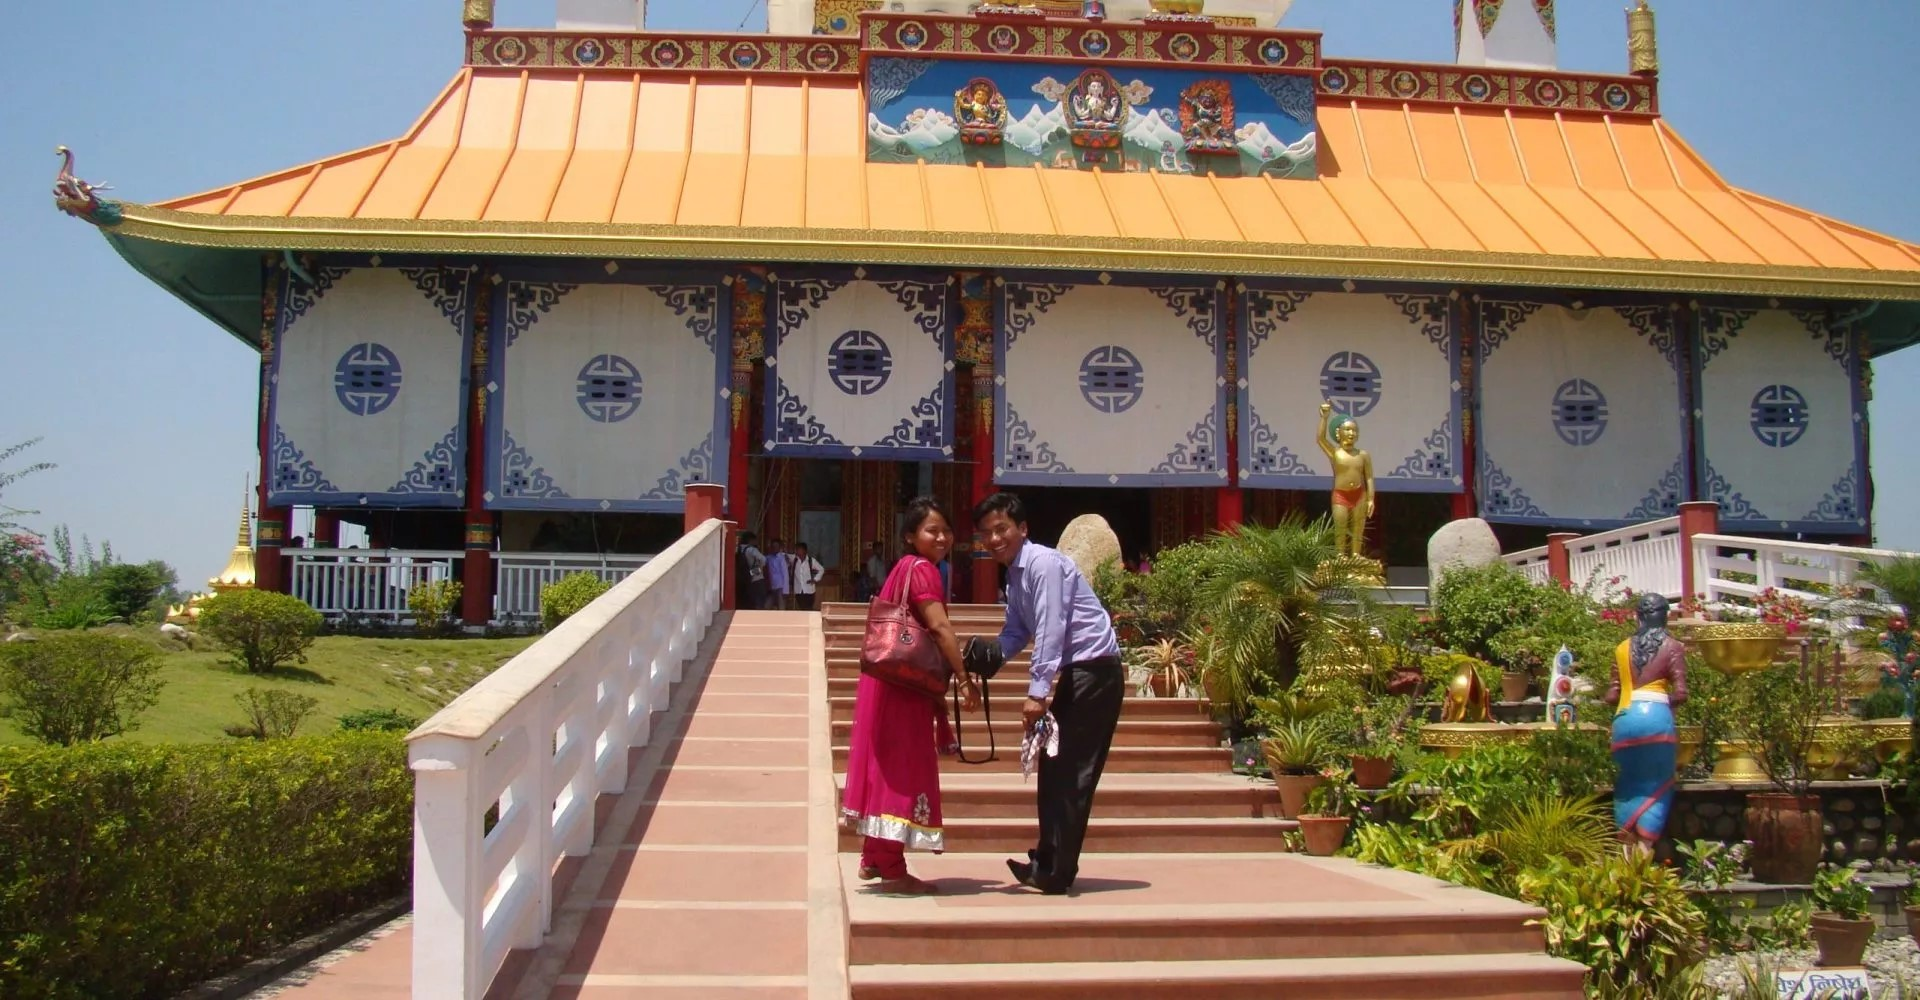 Number of domestic tourists increase in Lumbini with thousands visiting daily